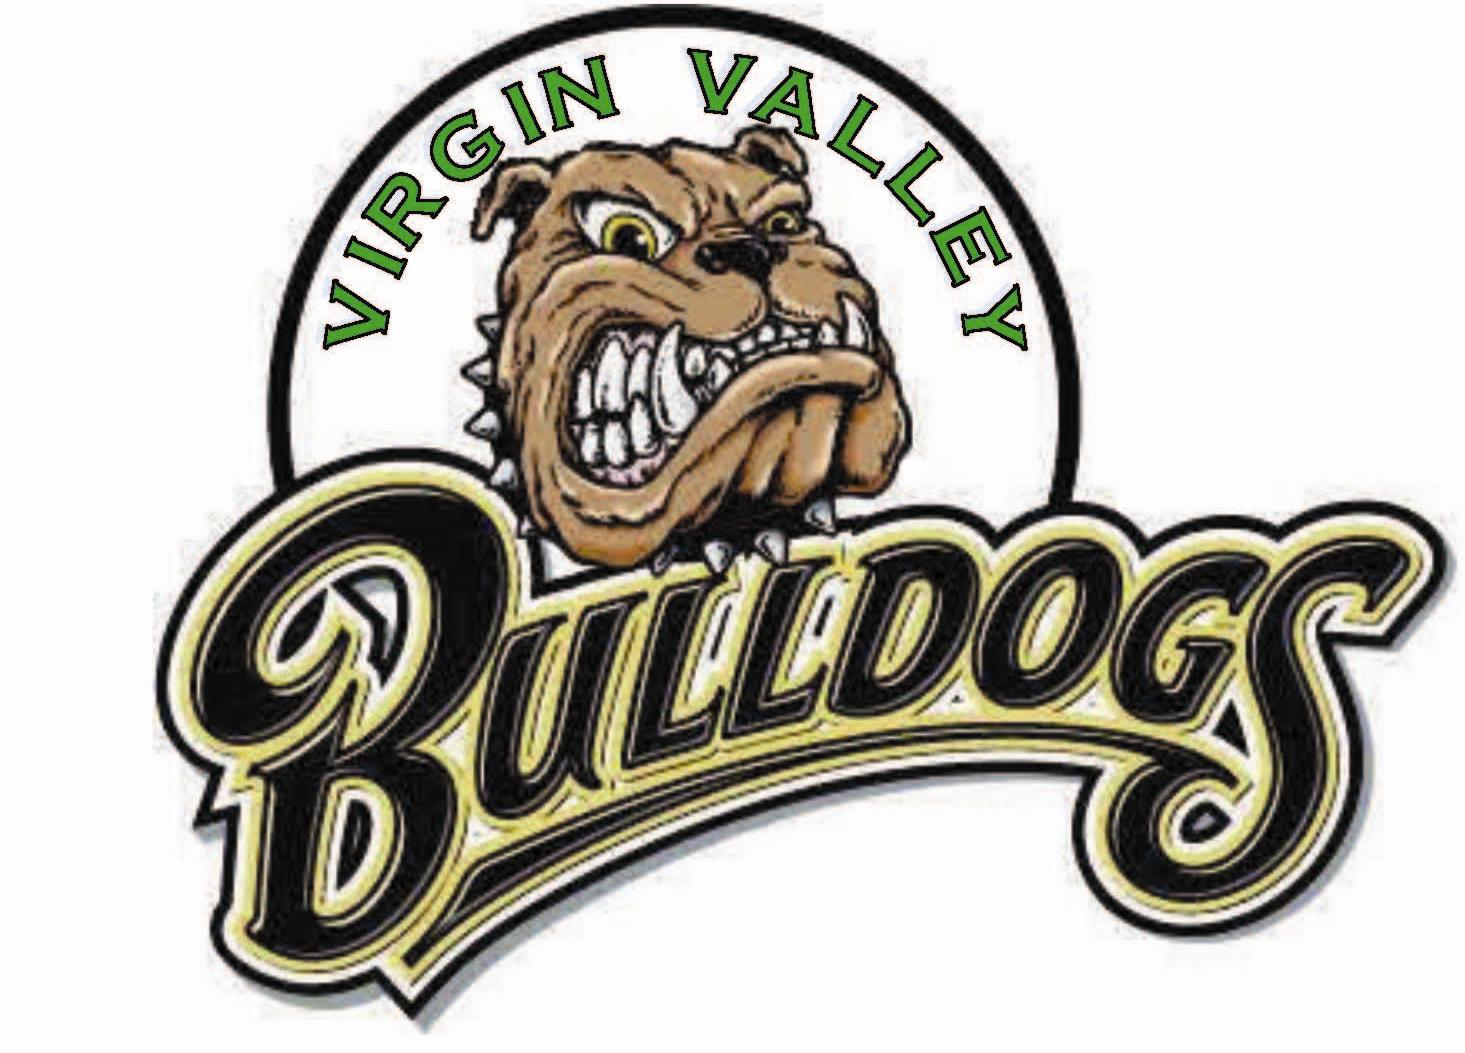 Bulldog sports roundup 9/7-9/15